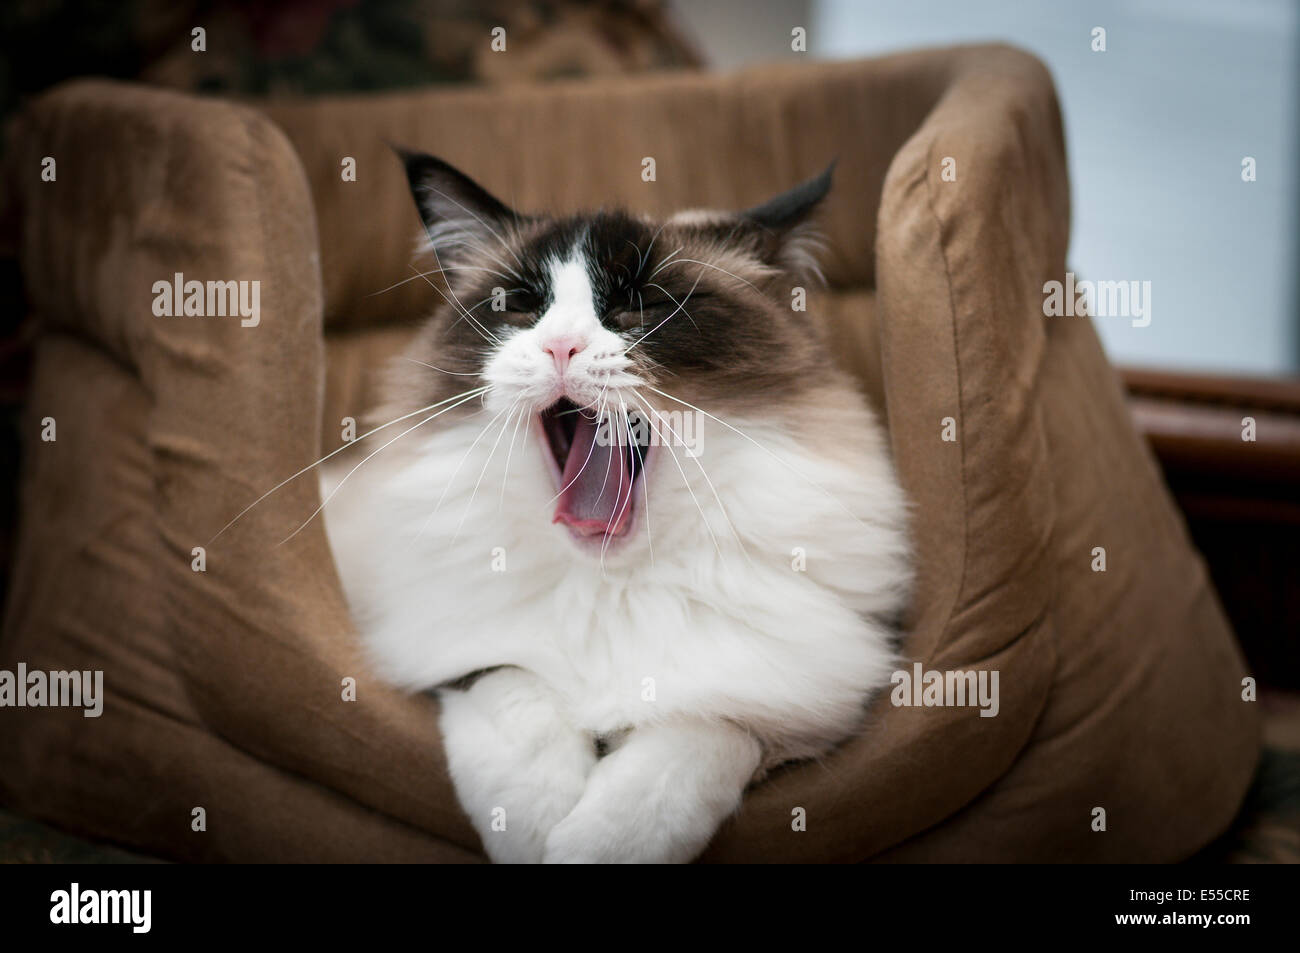 Young Ragdoll cat yawning after waking in her bed - Stock Image